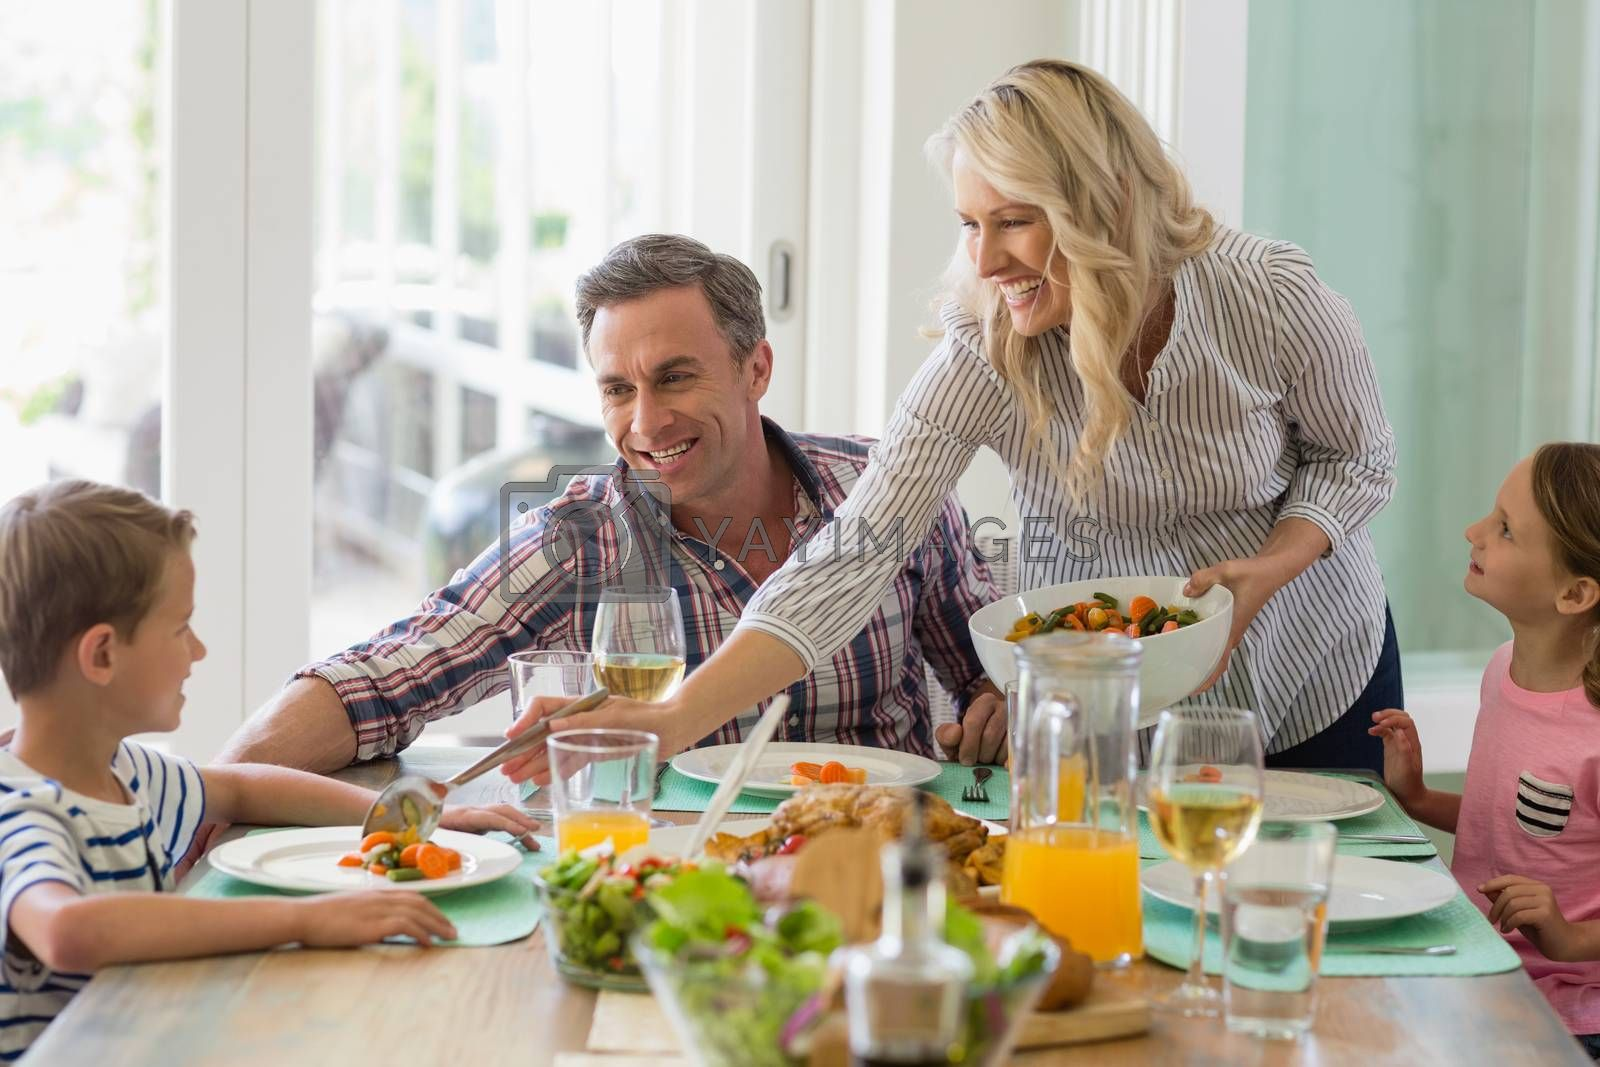 Mother serving food to family on dinning table at home